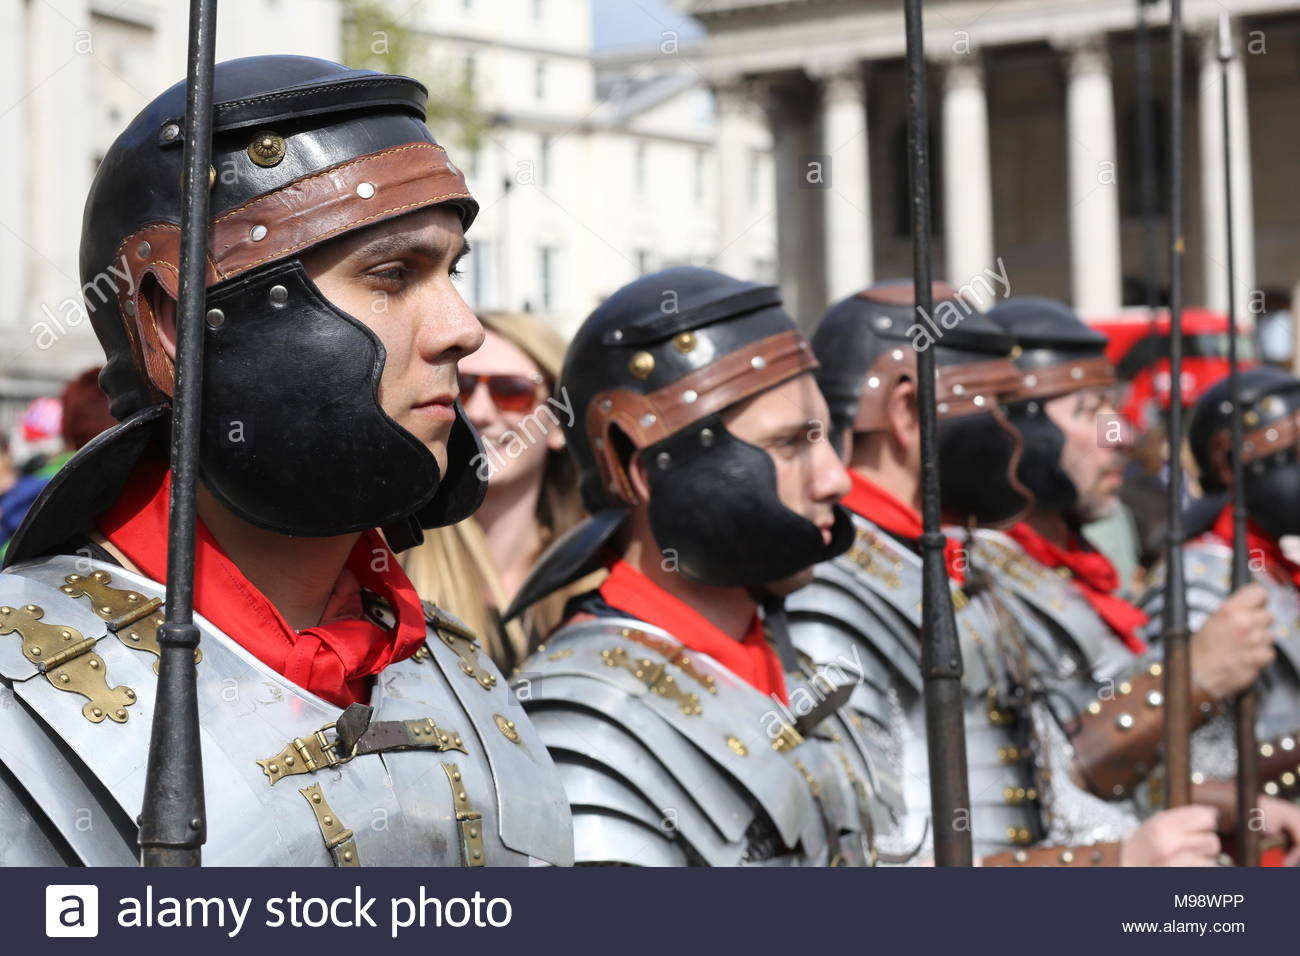 A group of participants dressed up in Trafalgar Square as Roman soldiers where the Easter performances were held at the weekend. - Stock Image